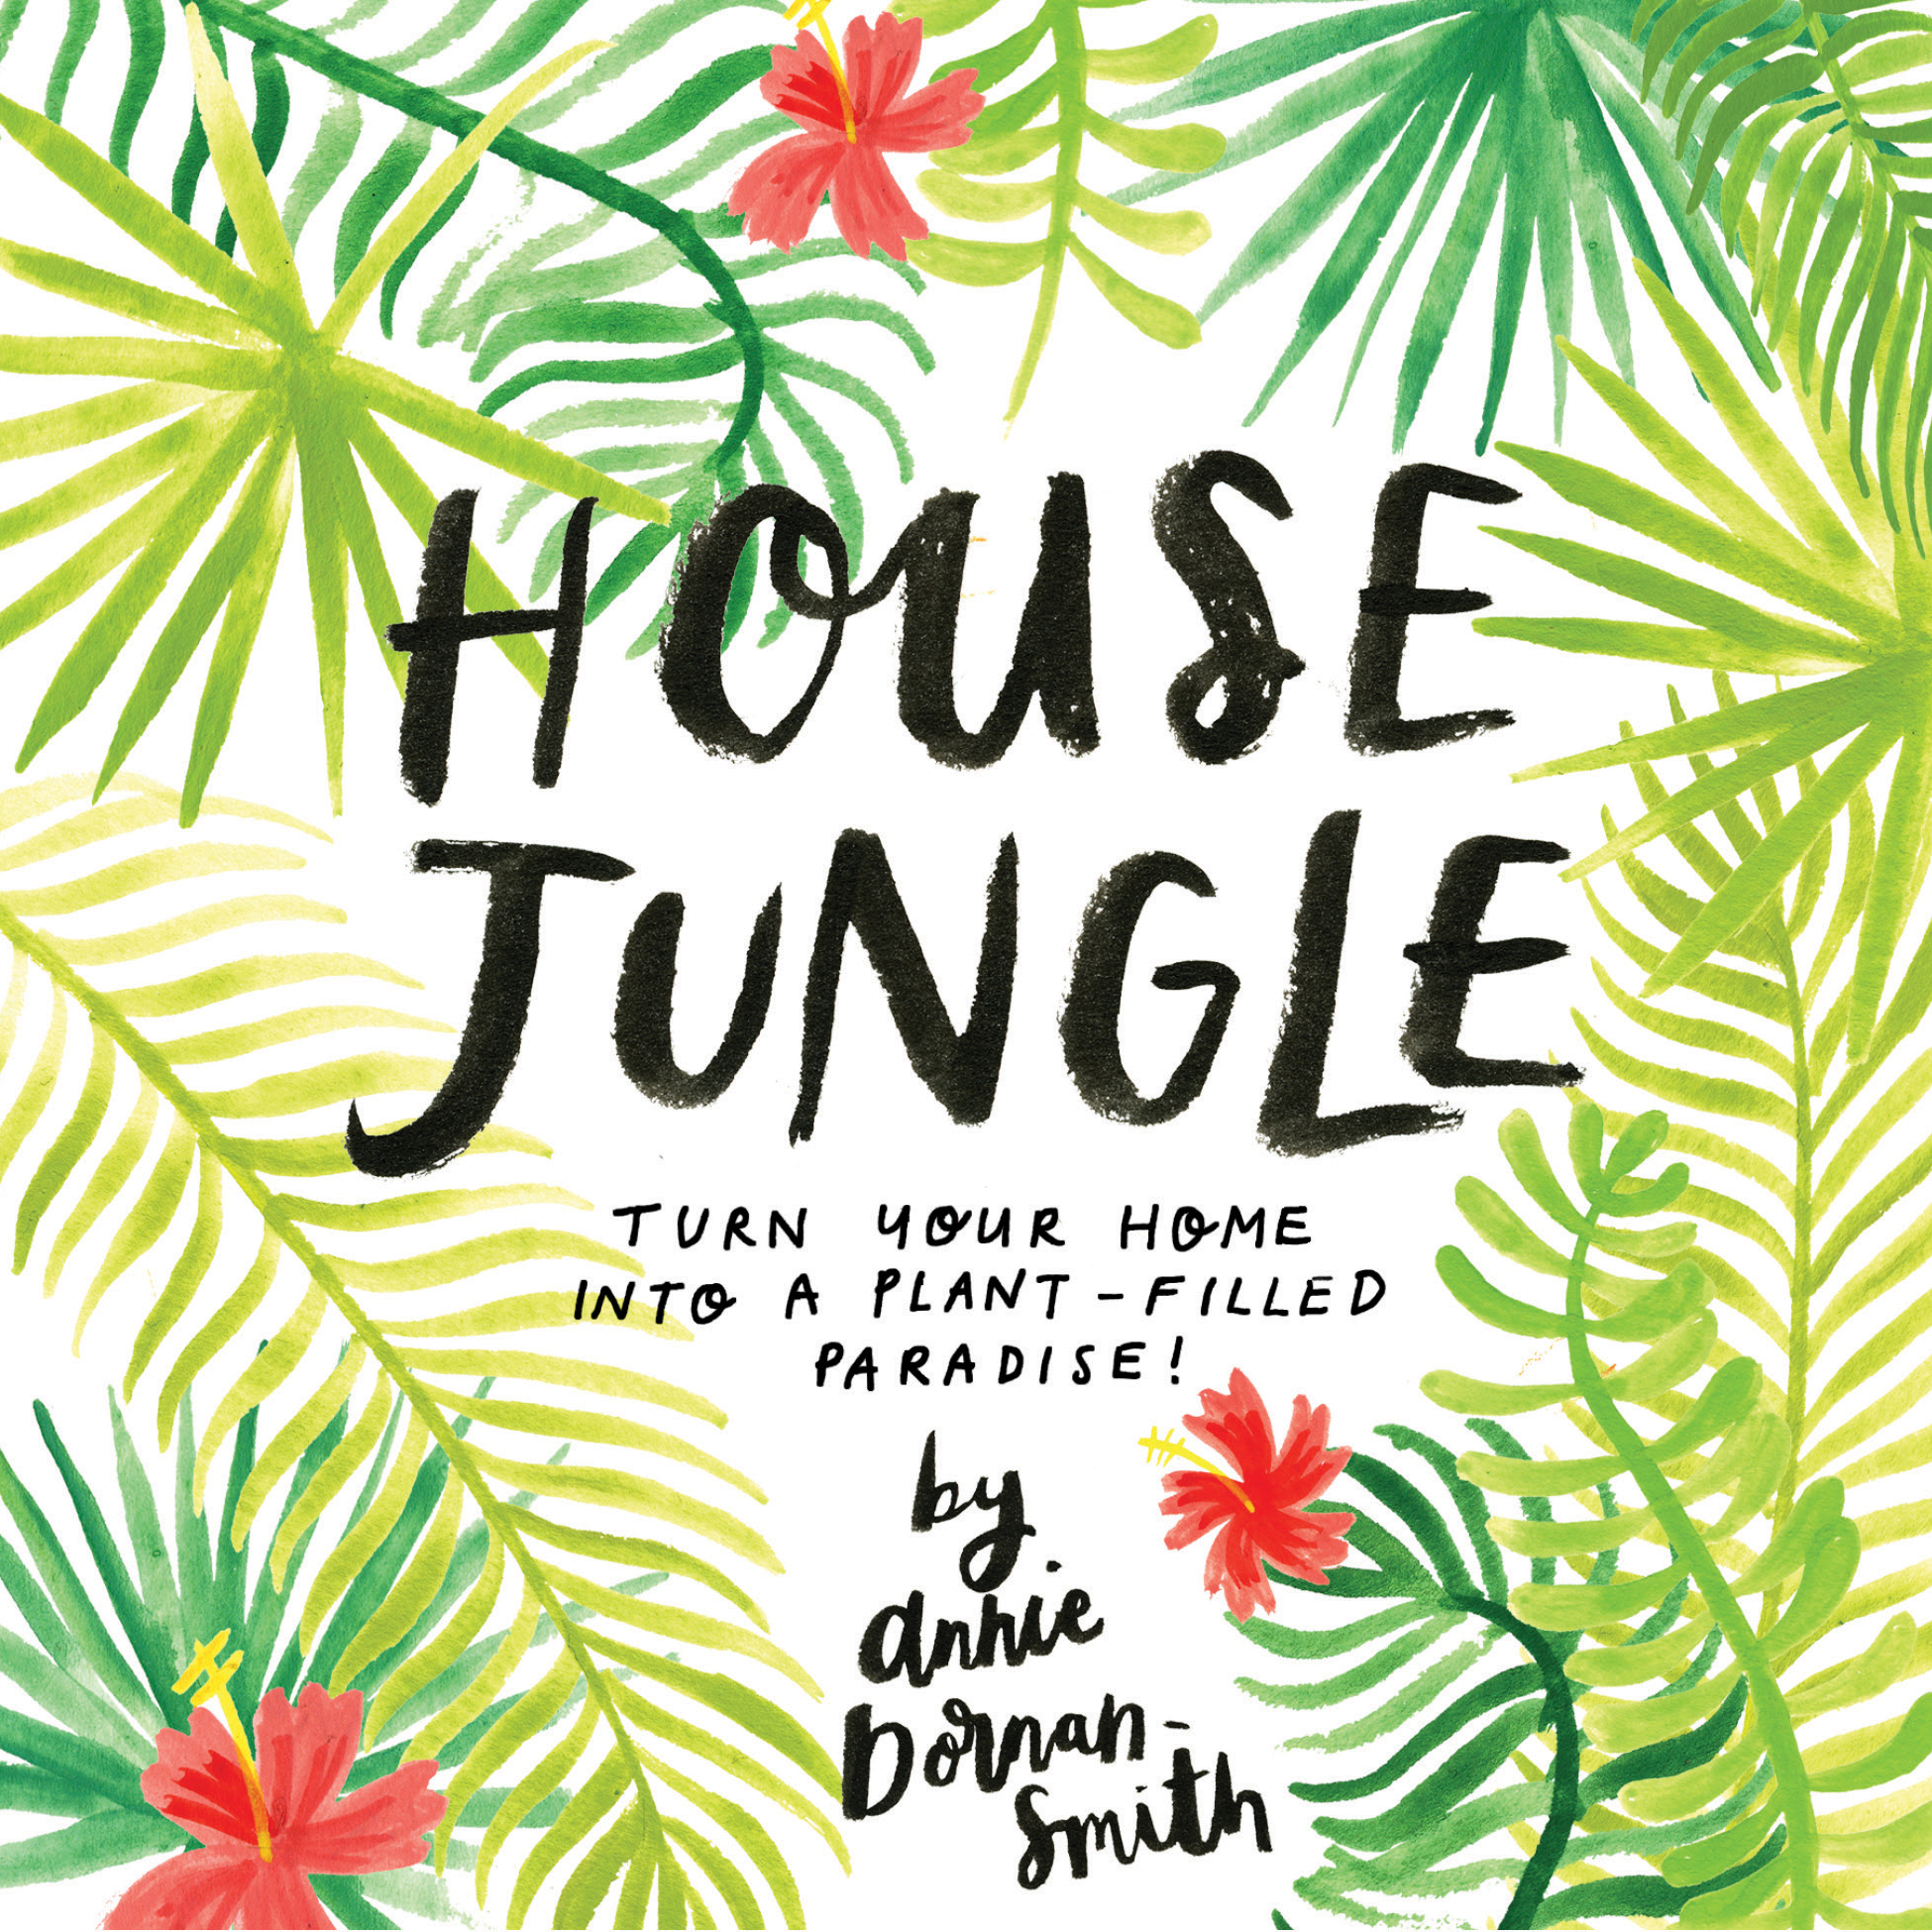 House Jungle Turn Your Home into a Plant-Filled Paradise! - Annie Dornan-Smith